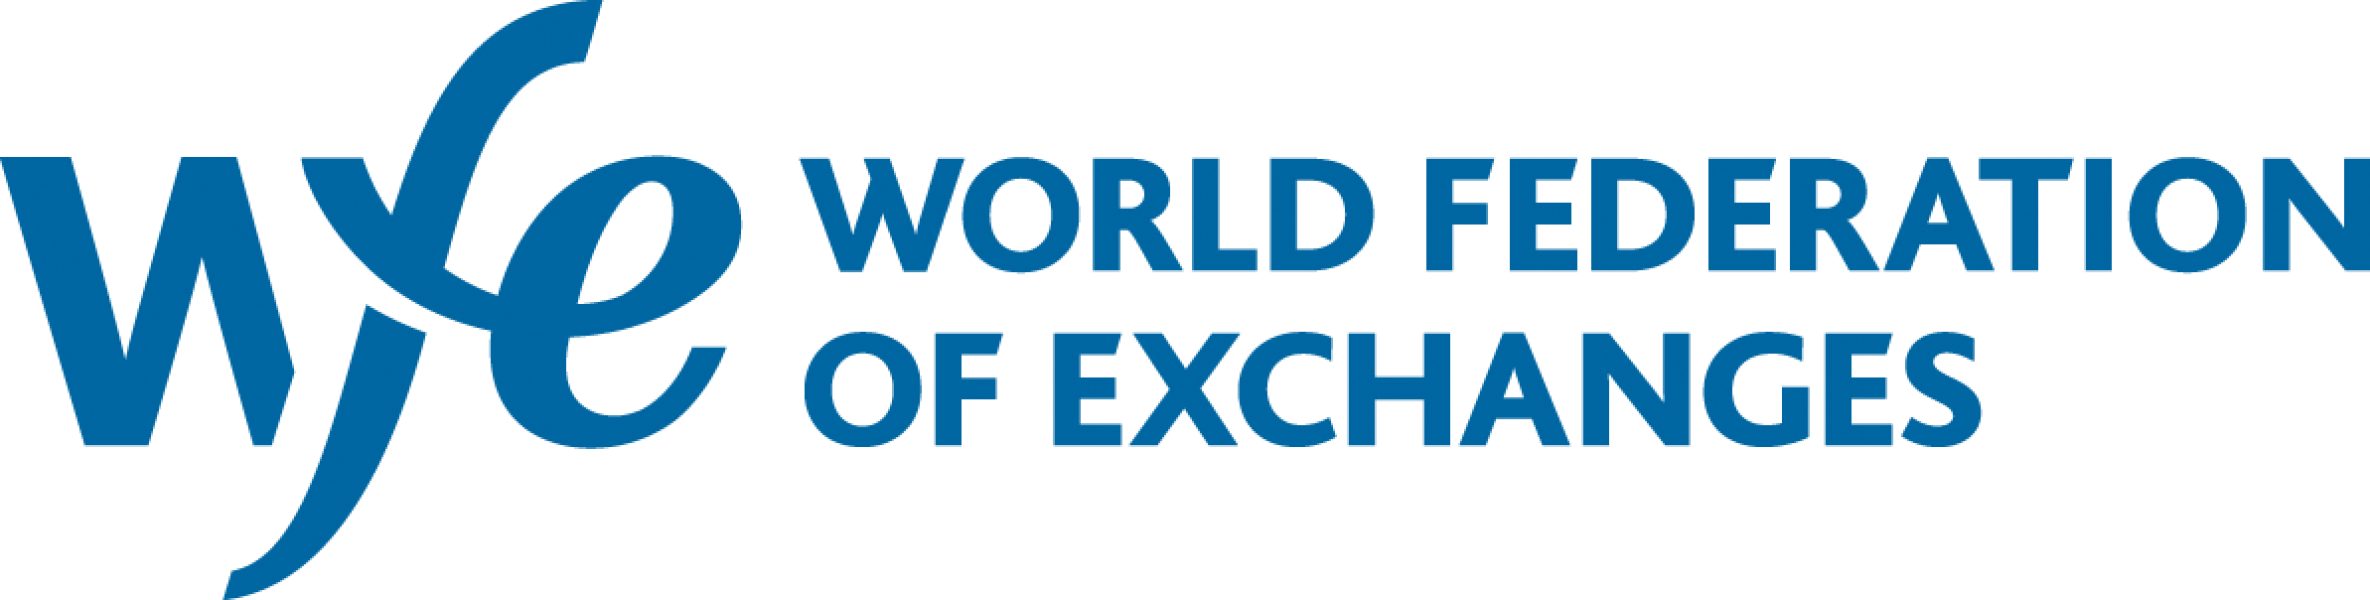 The-World-Federation-of-Exchanges-(WFE)-Elects-Eig